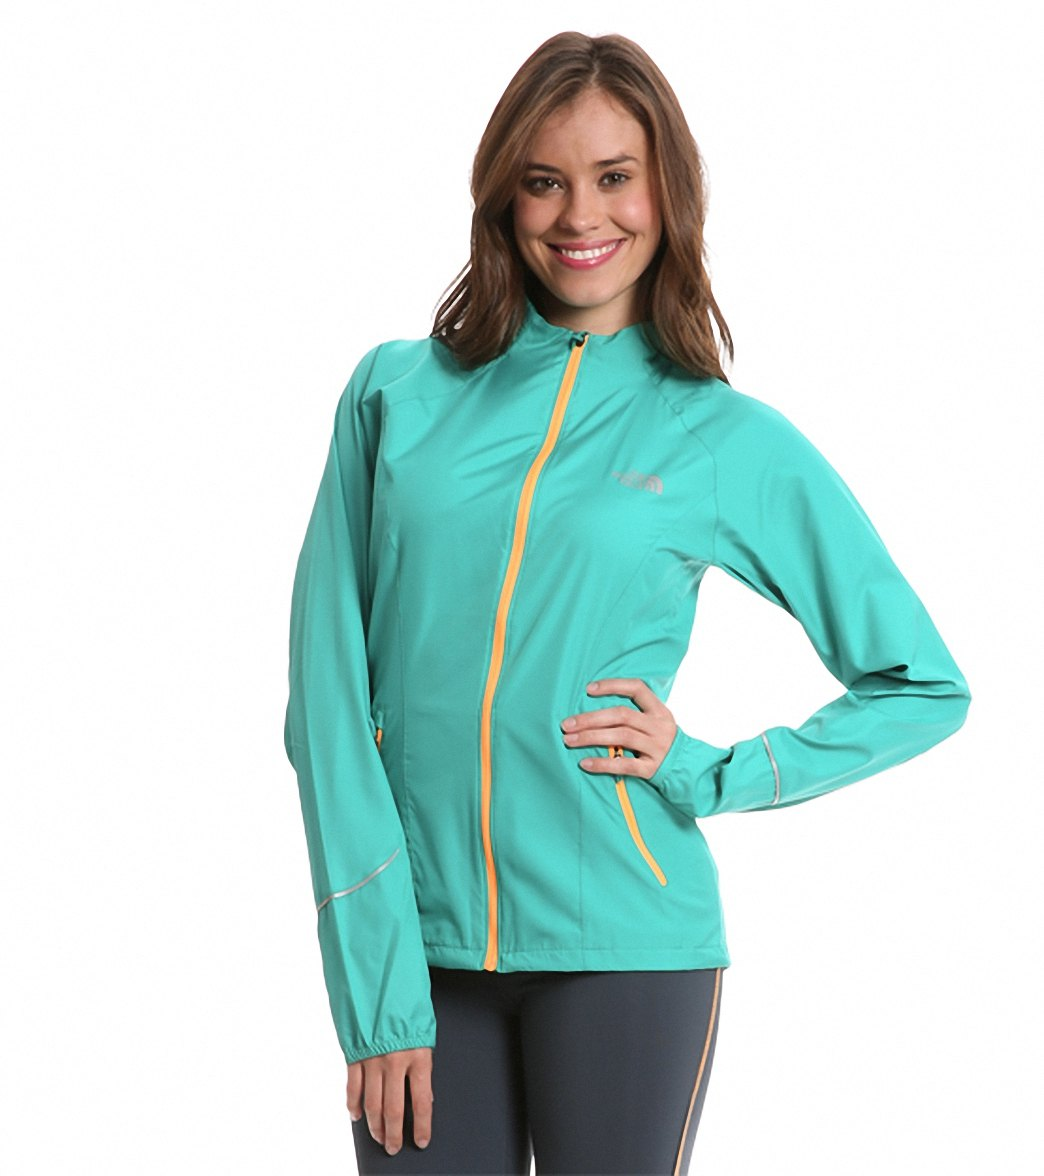 50a9c3d94ff5 The North Face Women s Run Torpedo Jacket at SwimOutlet.com - Free Shipping